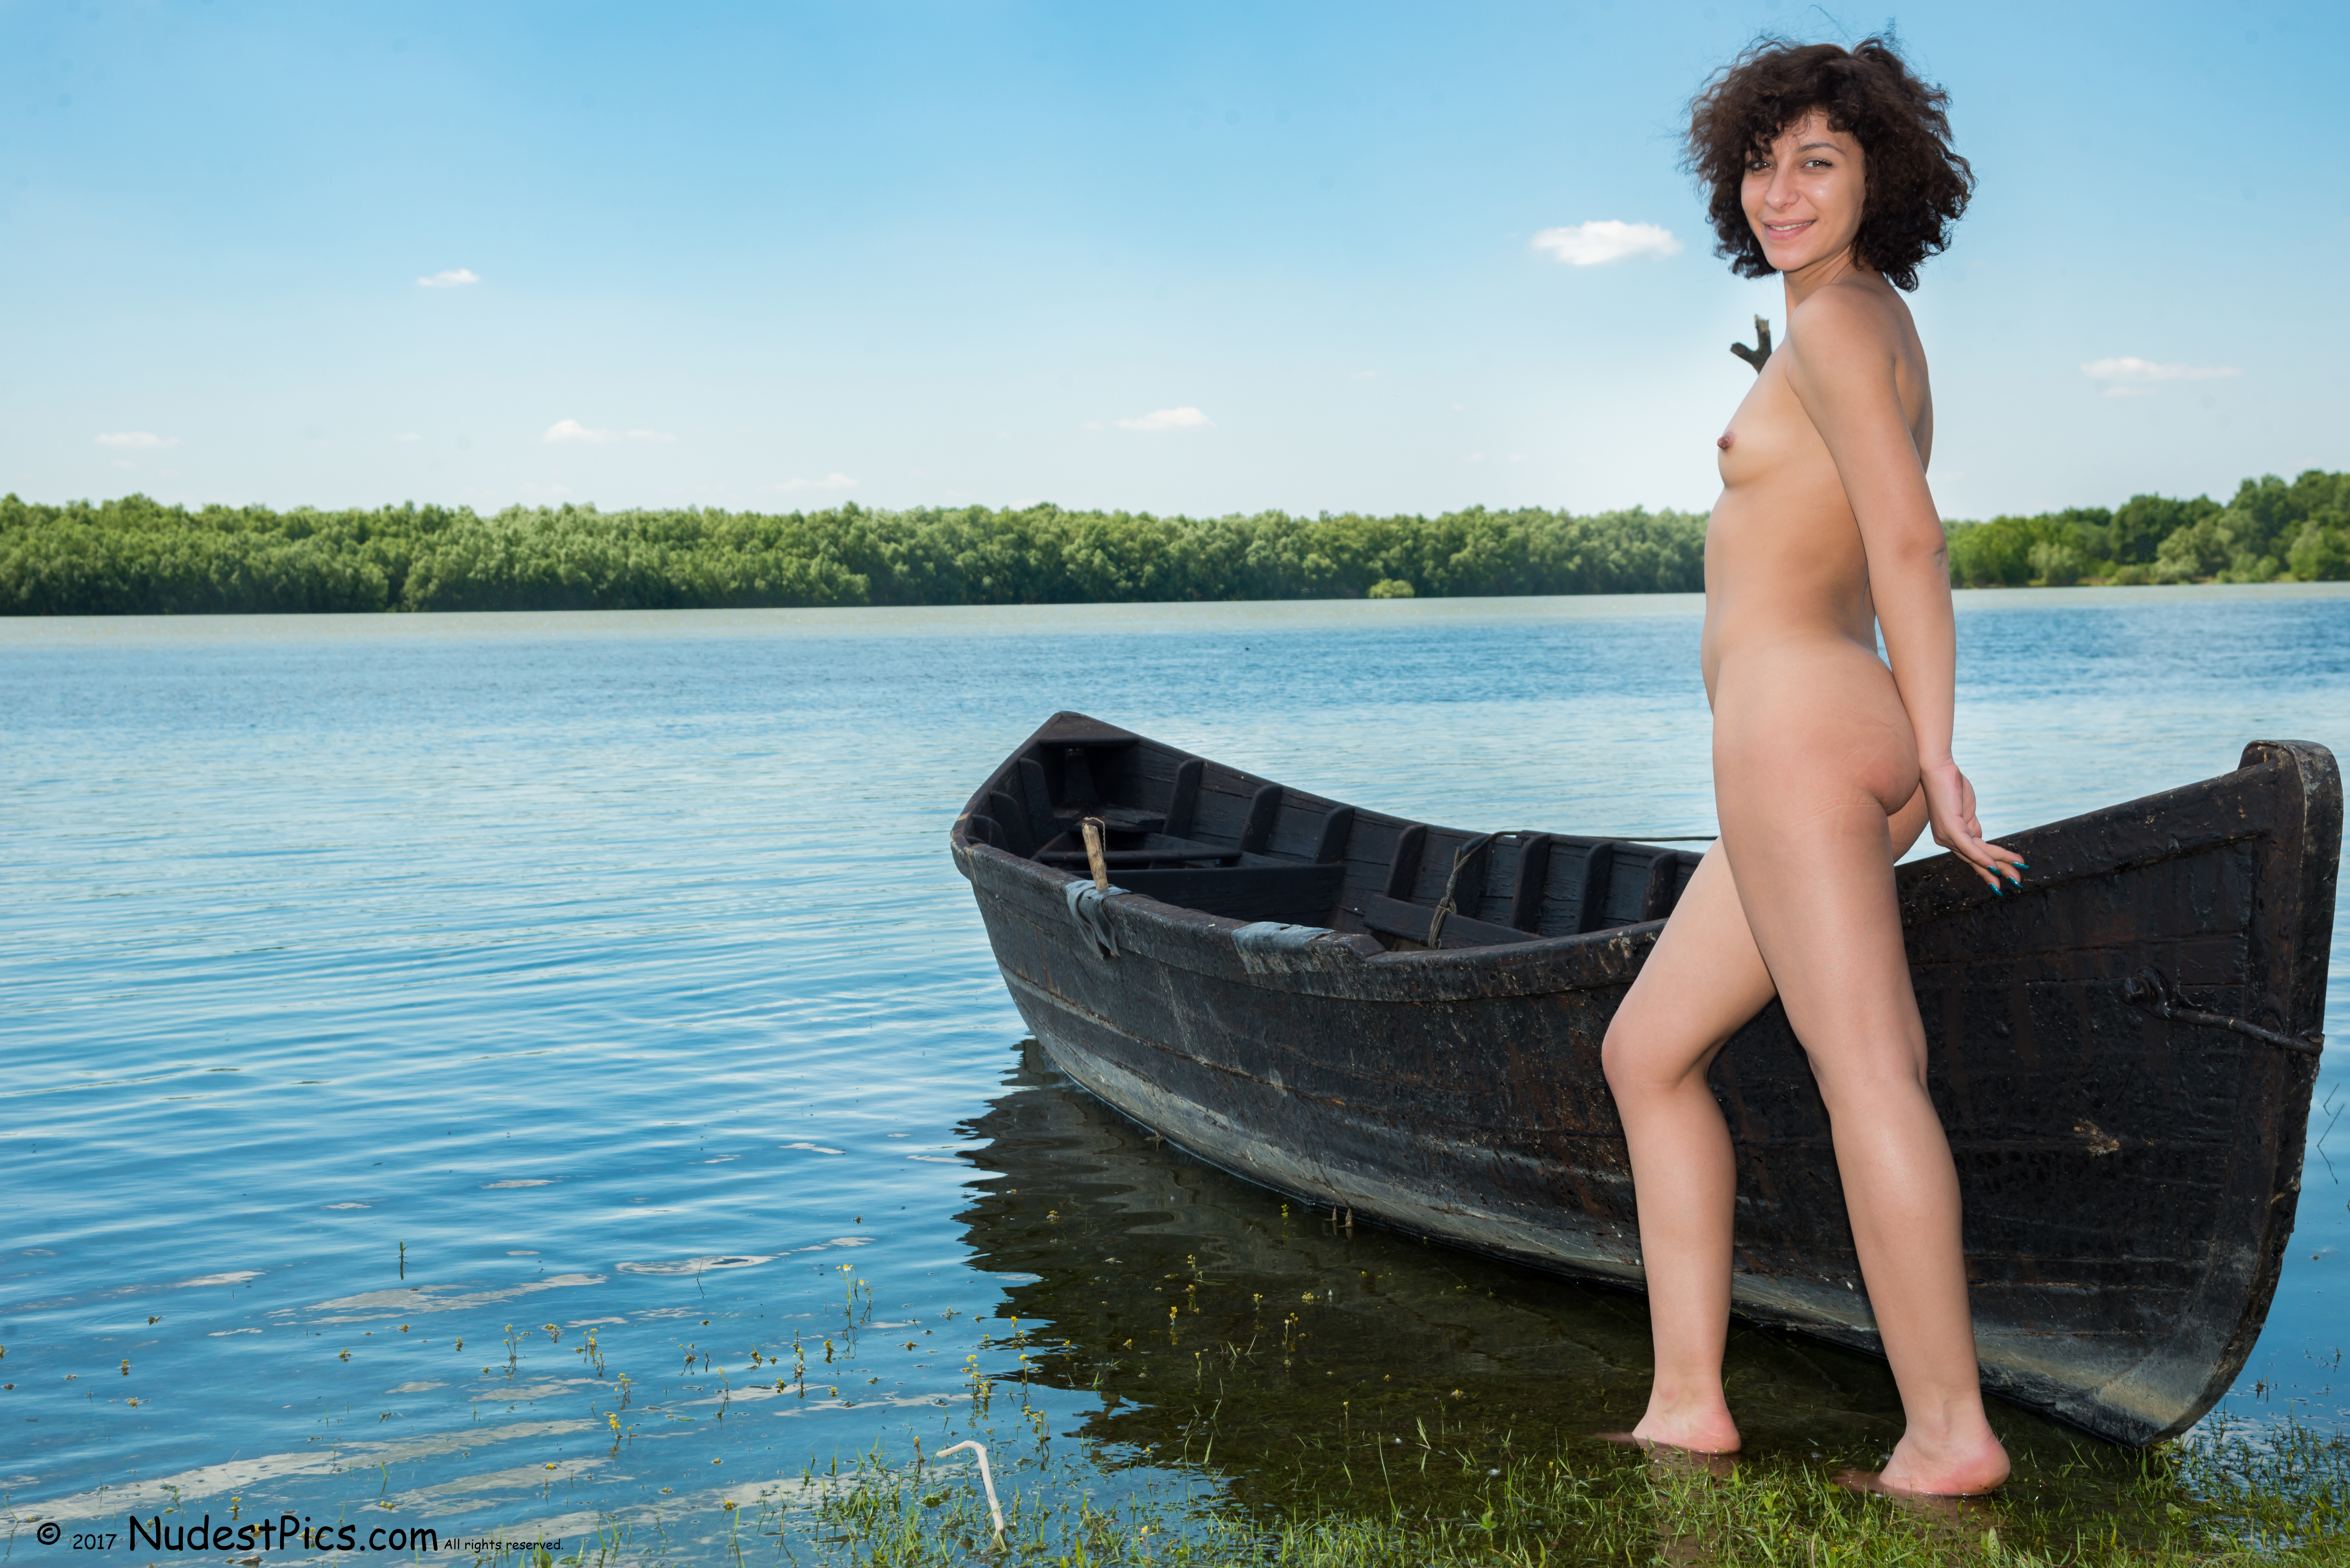 Nudist Girl in the Pond with her Boat HD